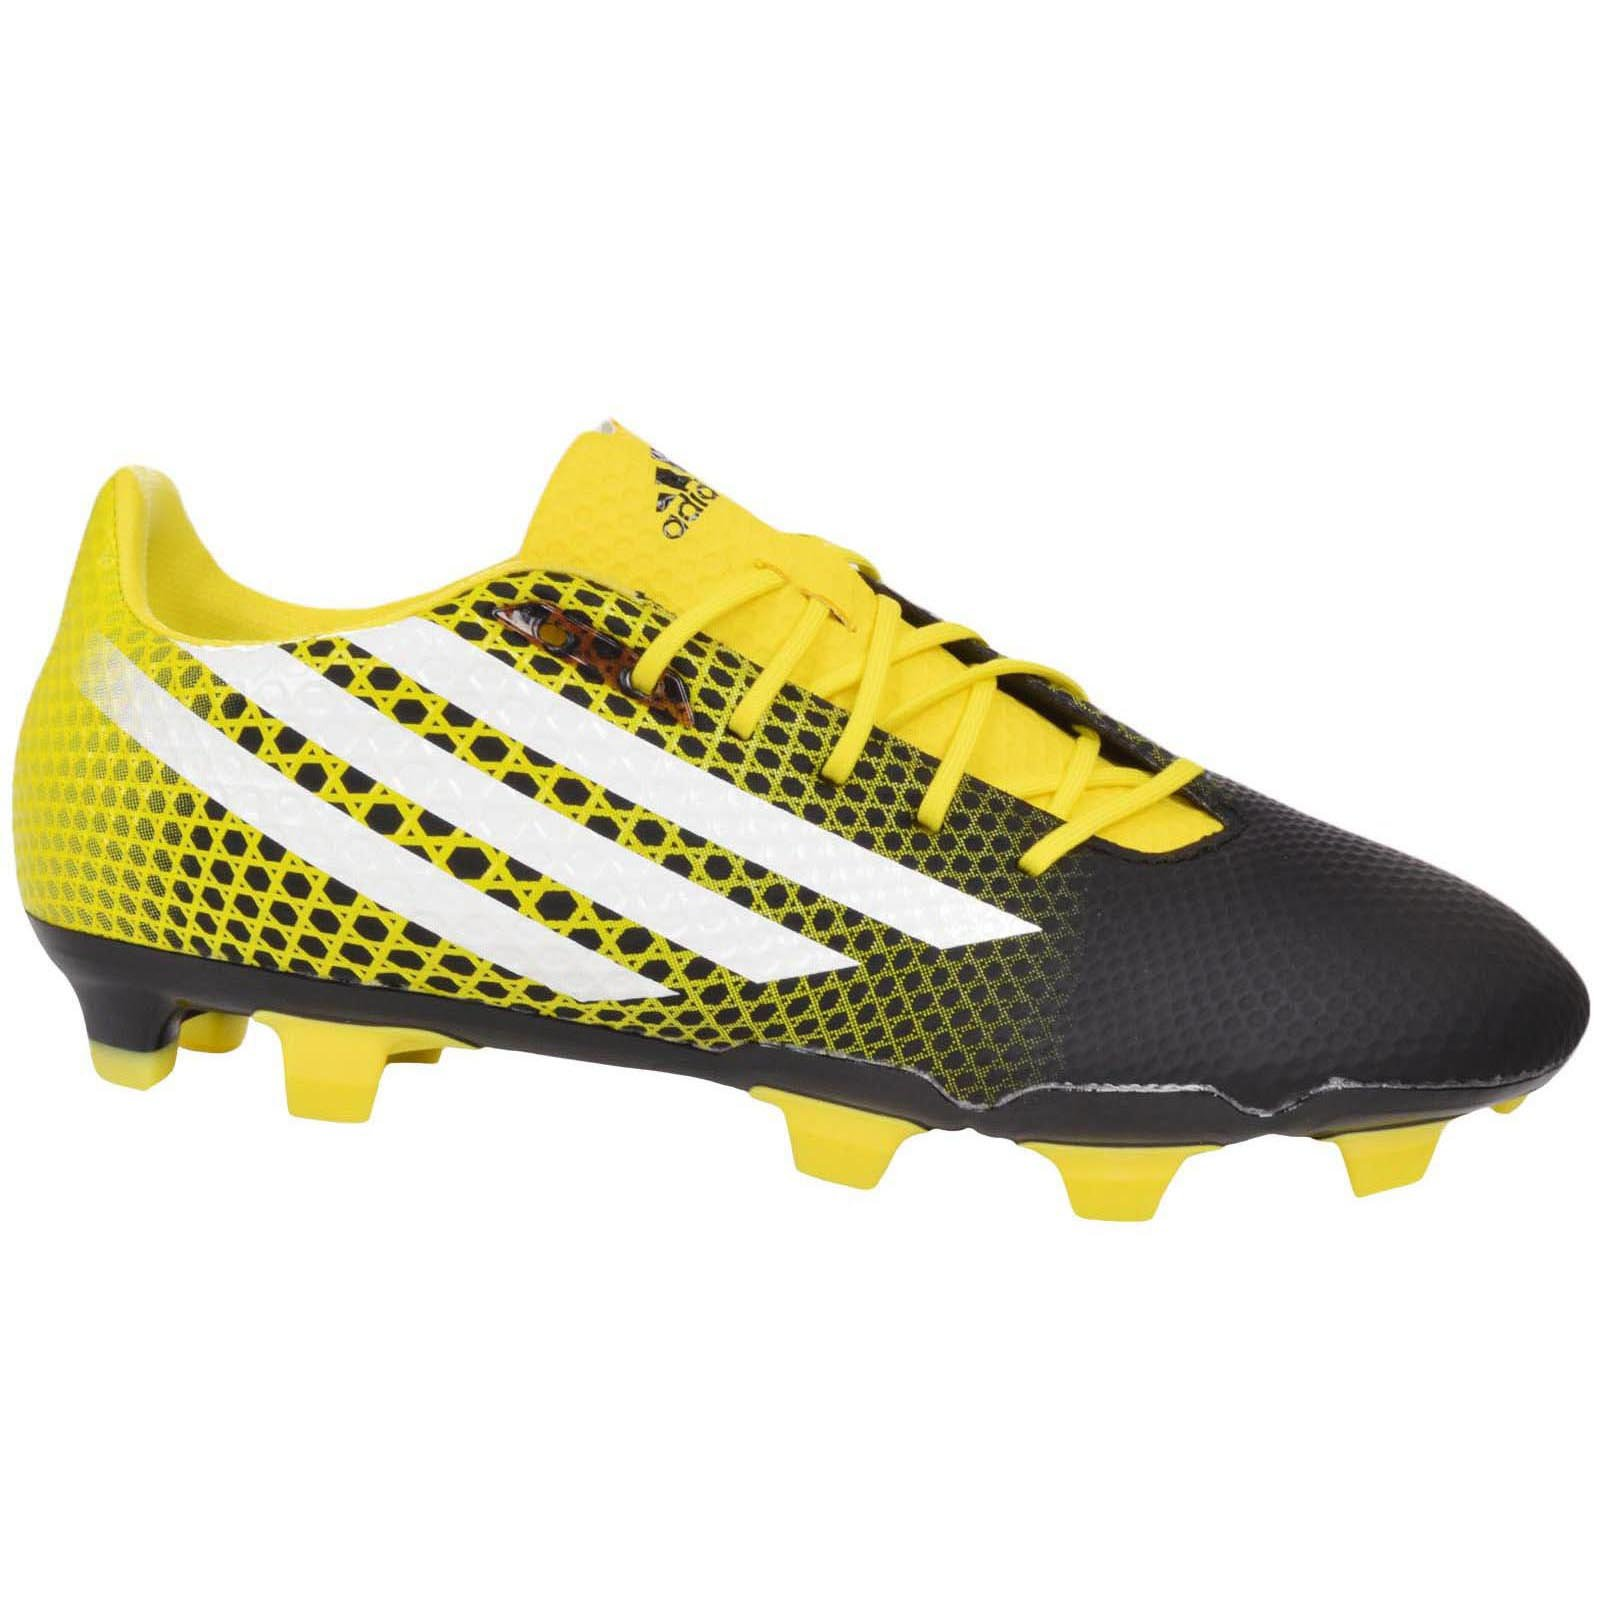 adidas Performance Mens Crazyquick Malice FG Rugby Boots - Black - 11.5US